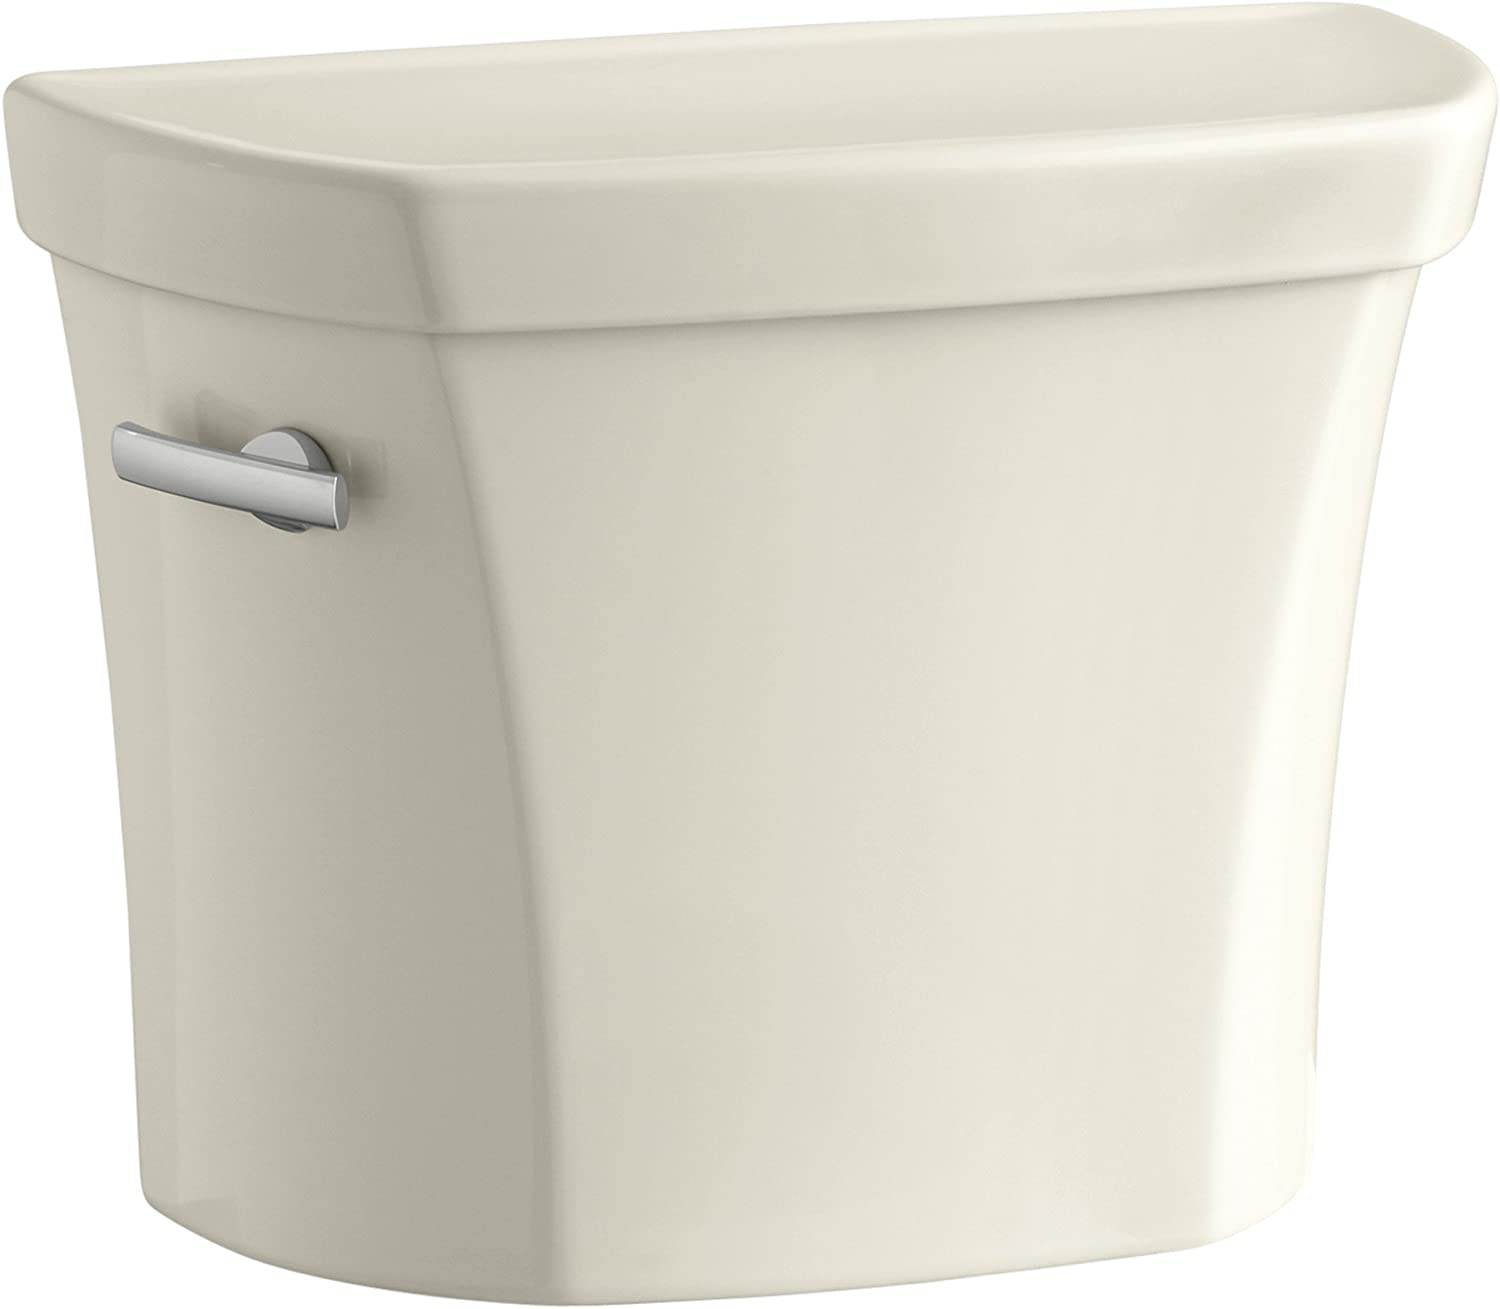 Wellworth 1.0 GPF Toilet Tank Left-Hand Trip Lever with Almond Ranking SALENEW very popular! TOP16